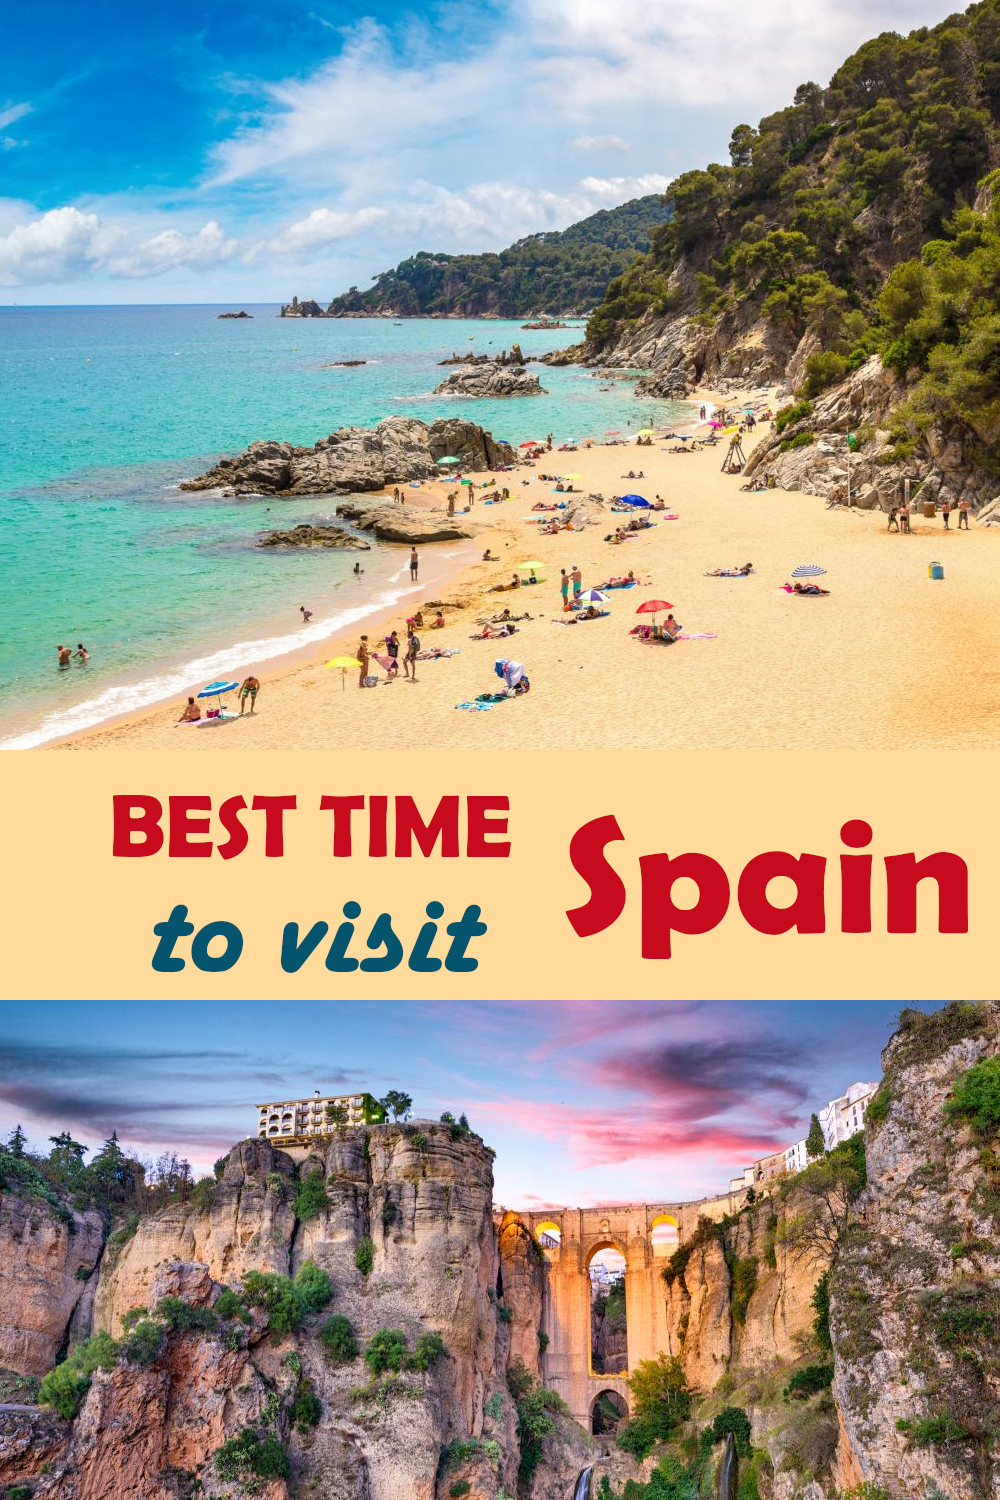 Best time to visit Spain for the weather, prices, events, things to do and to avoid the tourist crowds